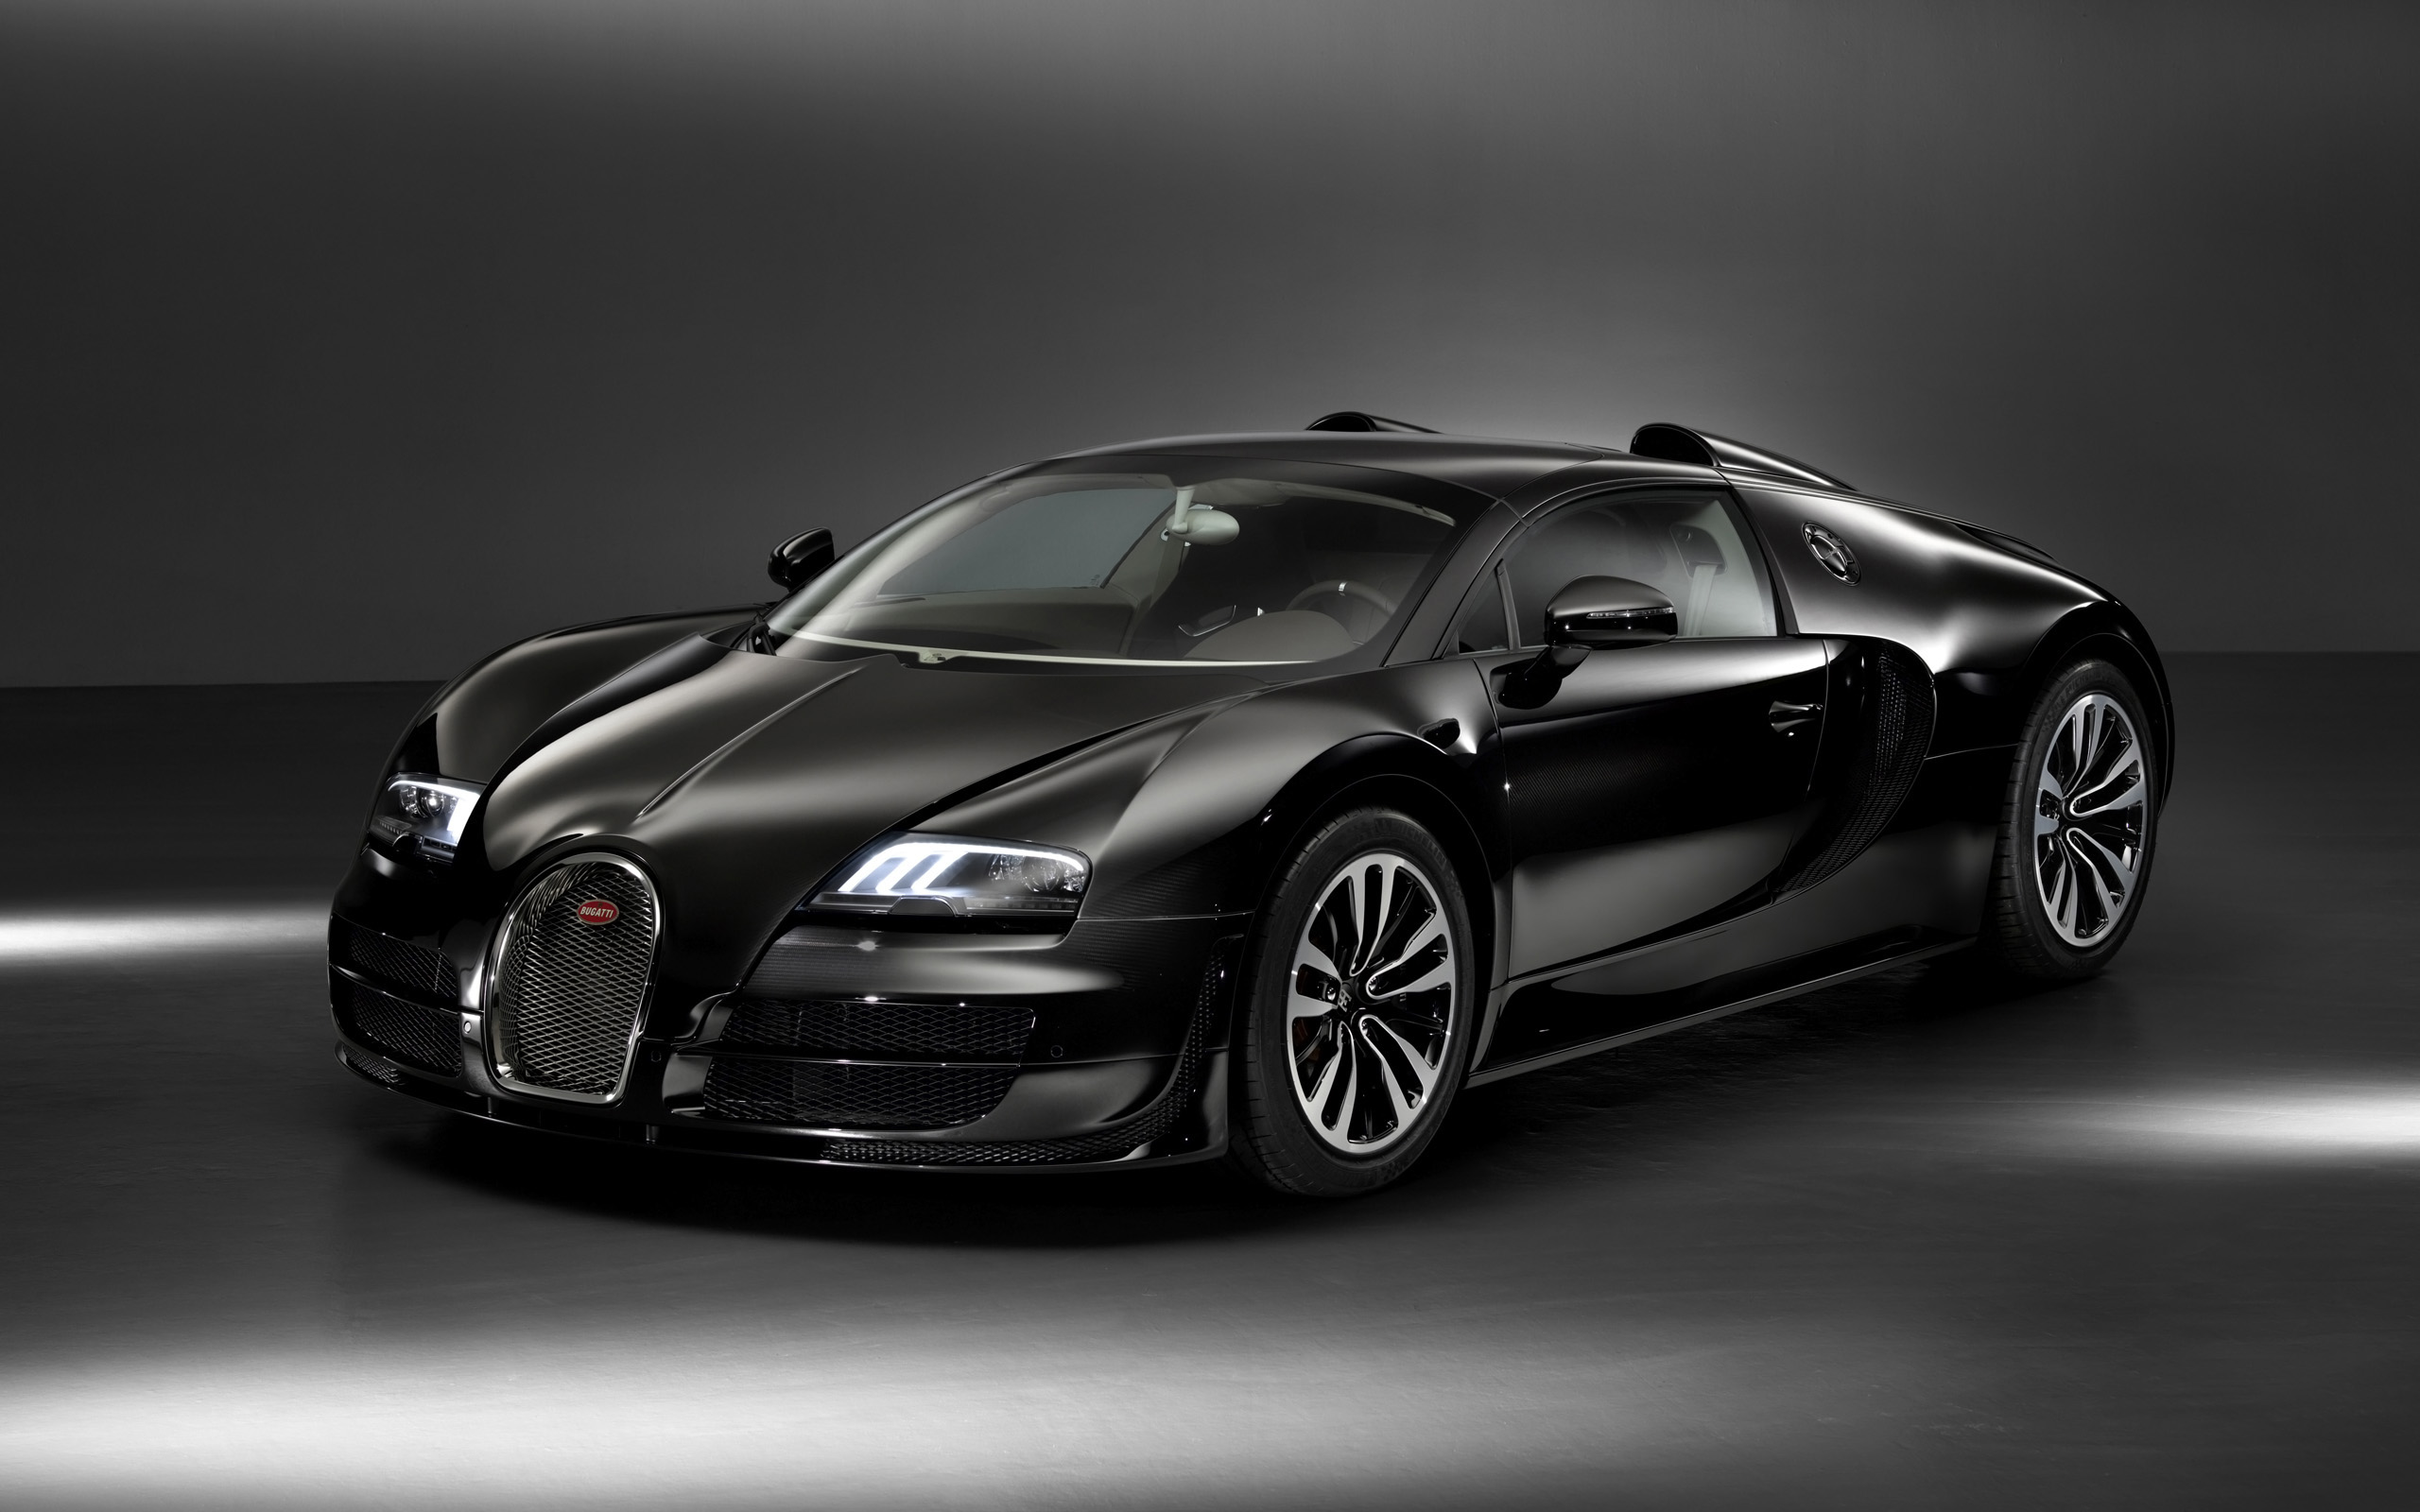 need for speed rivals bugatti cop car 4148959 1920x1080 all for desktop. Black Bedroom Furniture Sets. Home Design Ideas